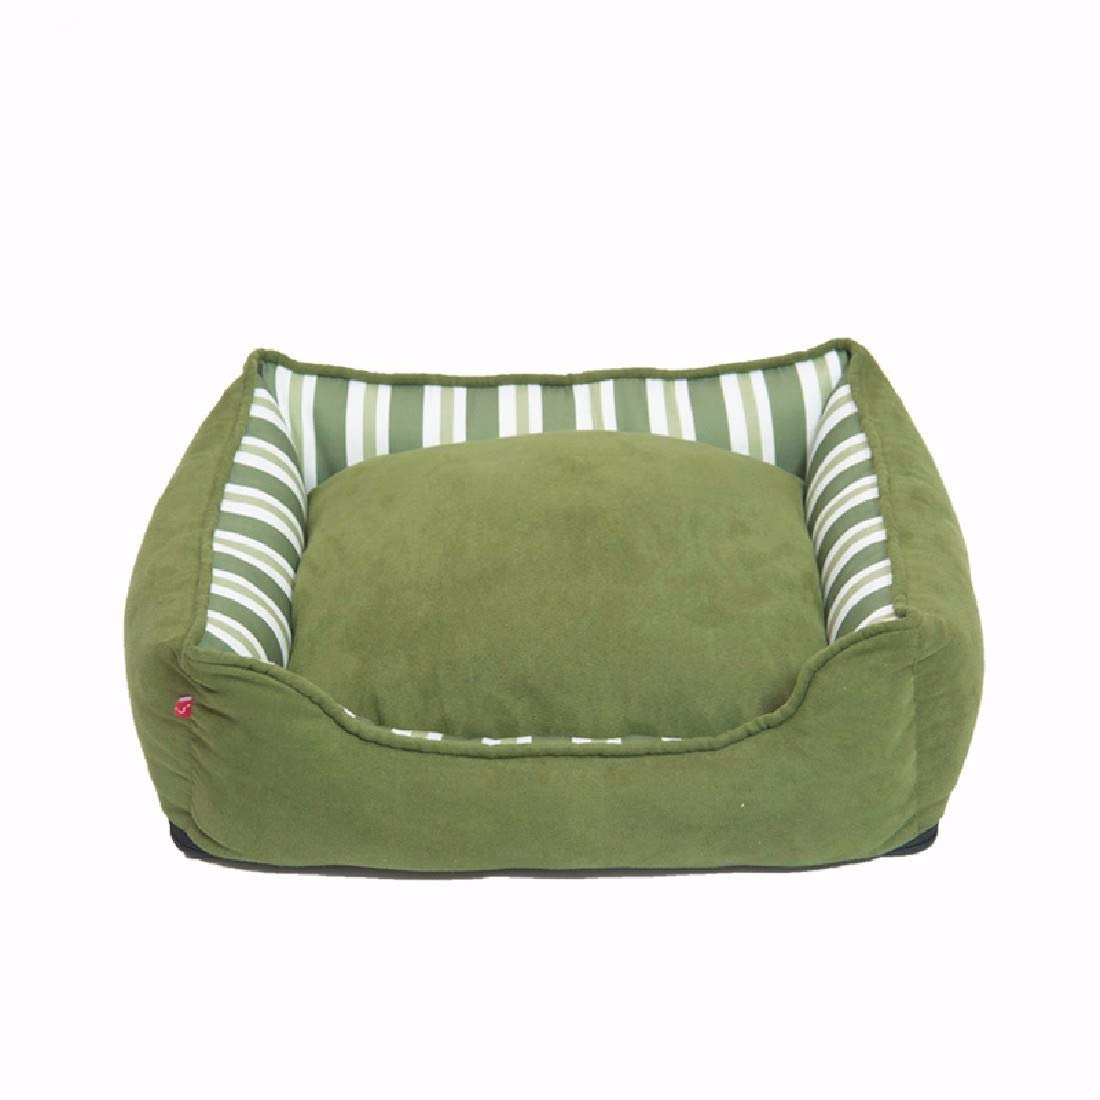 Green S (50x42x15cm) green S (50x42x15cm) Pet Dog Cat House Bed Dog House Large Dog pet Products Dog House Four Seasons,Green,S (50x42x15cm)